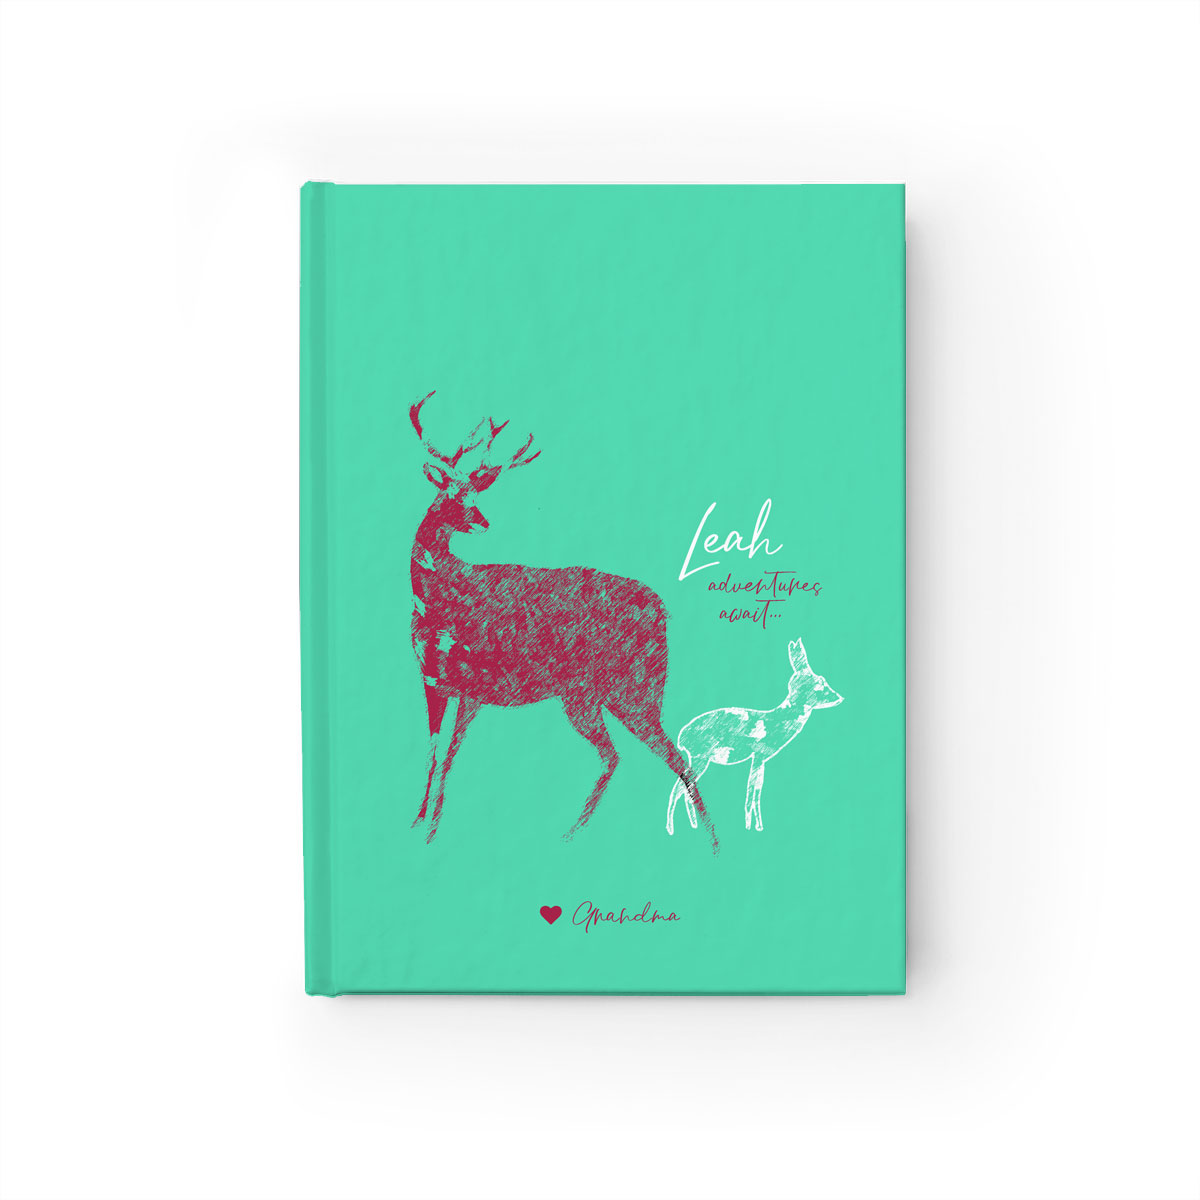 Personalized Notebook for Kids/Pre-Teens – Adventures Await (lined or blank)